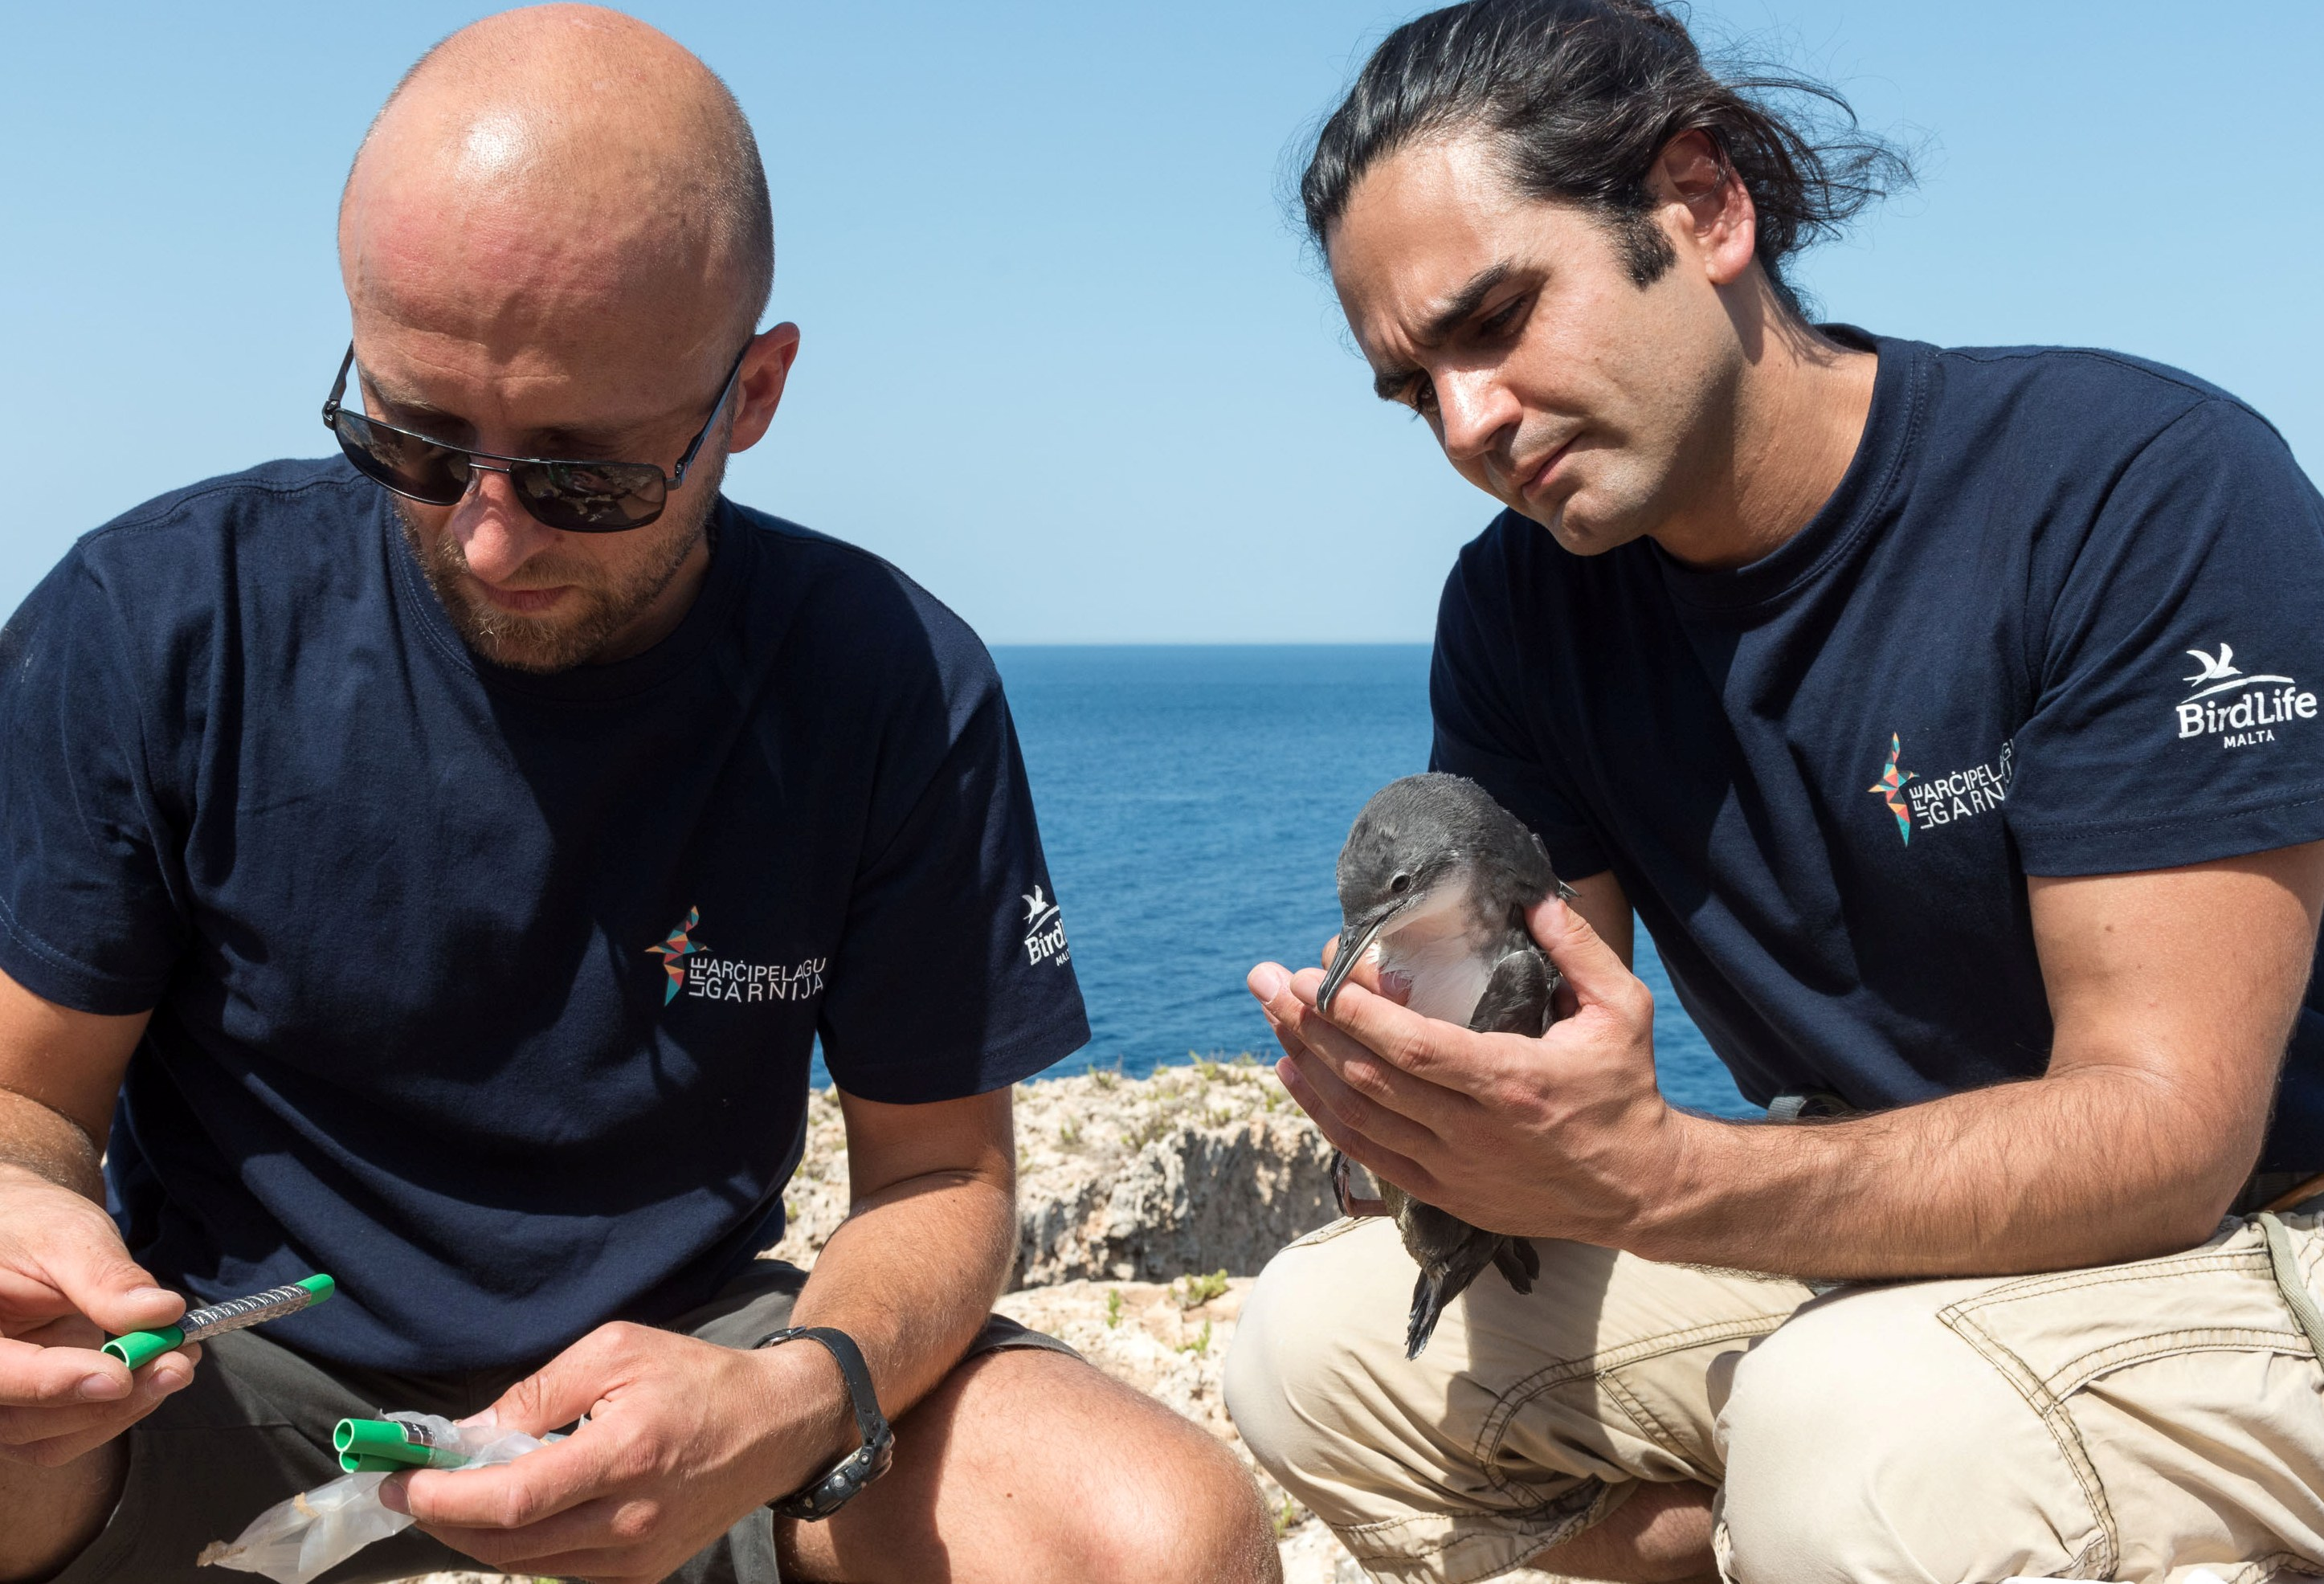 5. Ben Metzger and Nick Piludu preparing to ring Carmel (Photo by HSBC Malta)